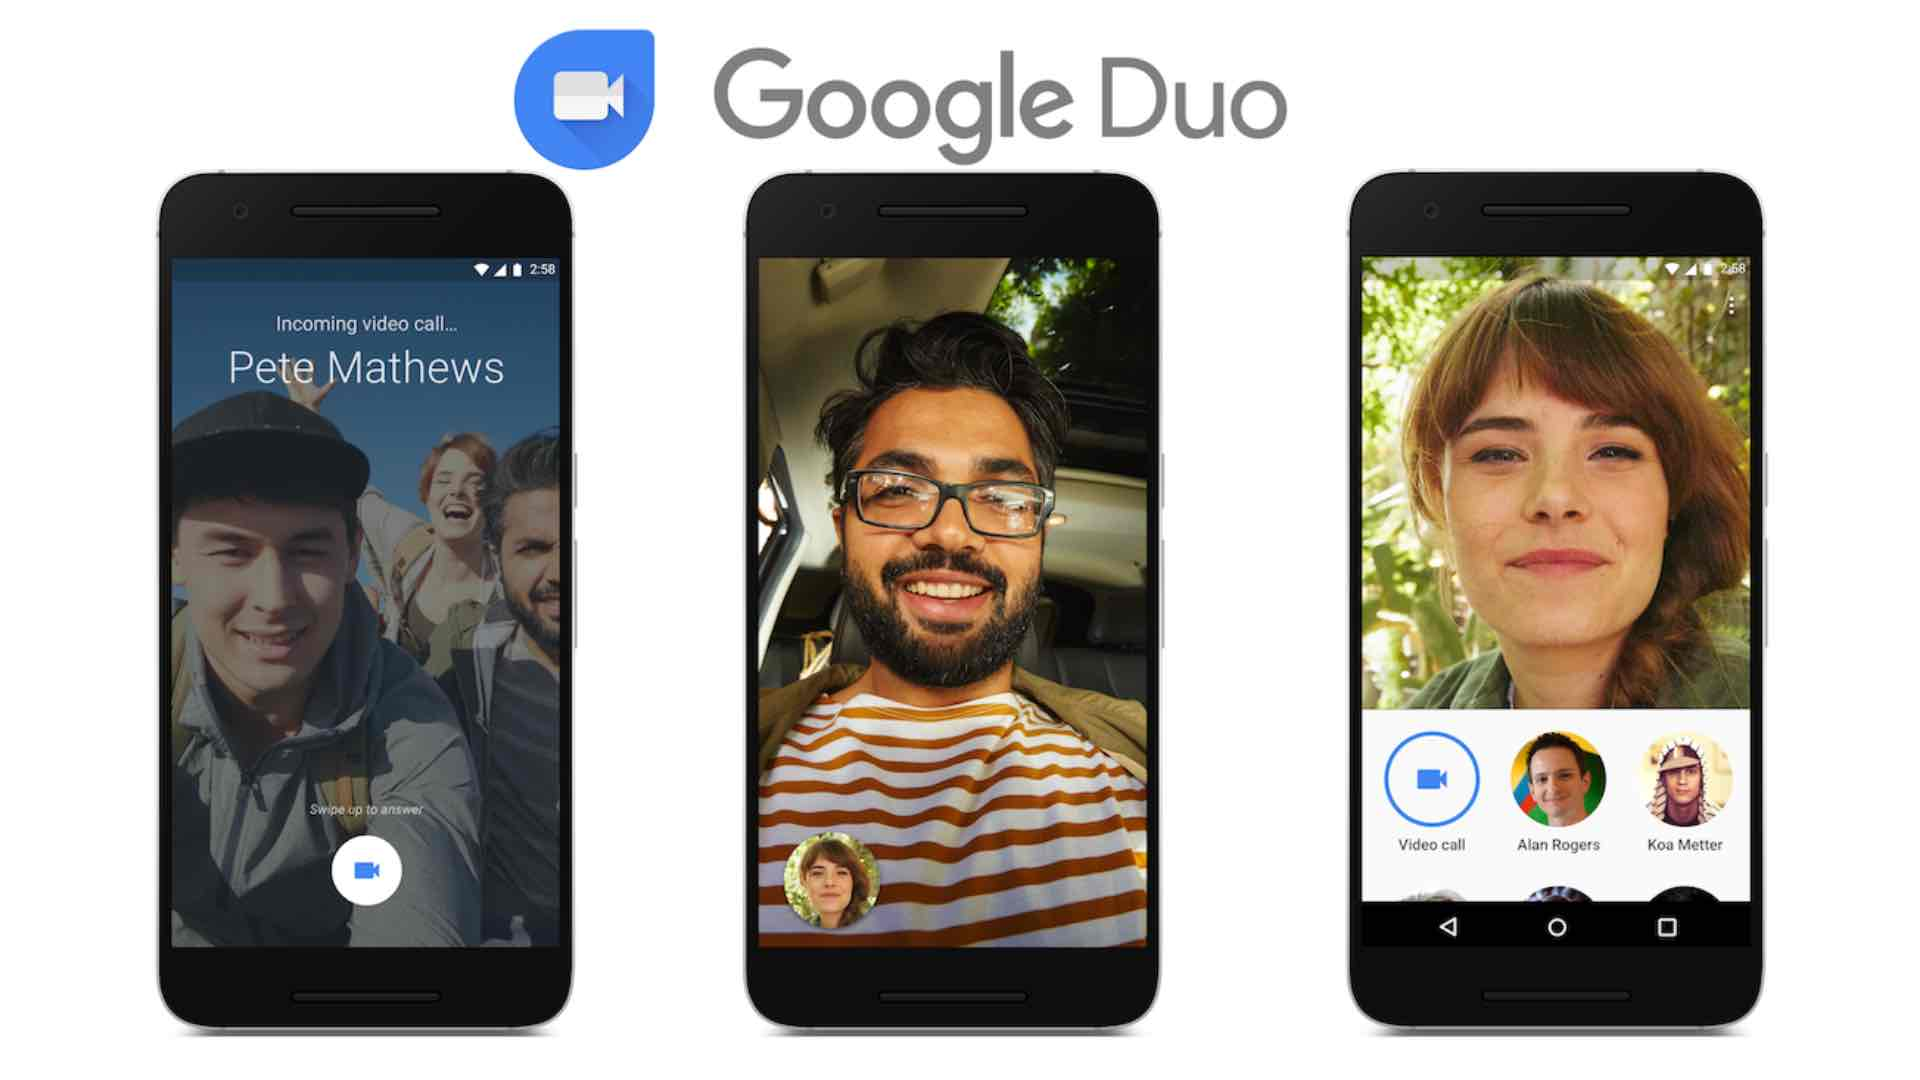 Google Duo is a video chat app that still exists.